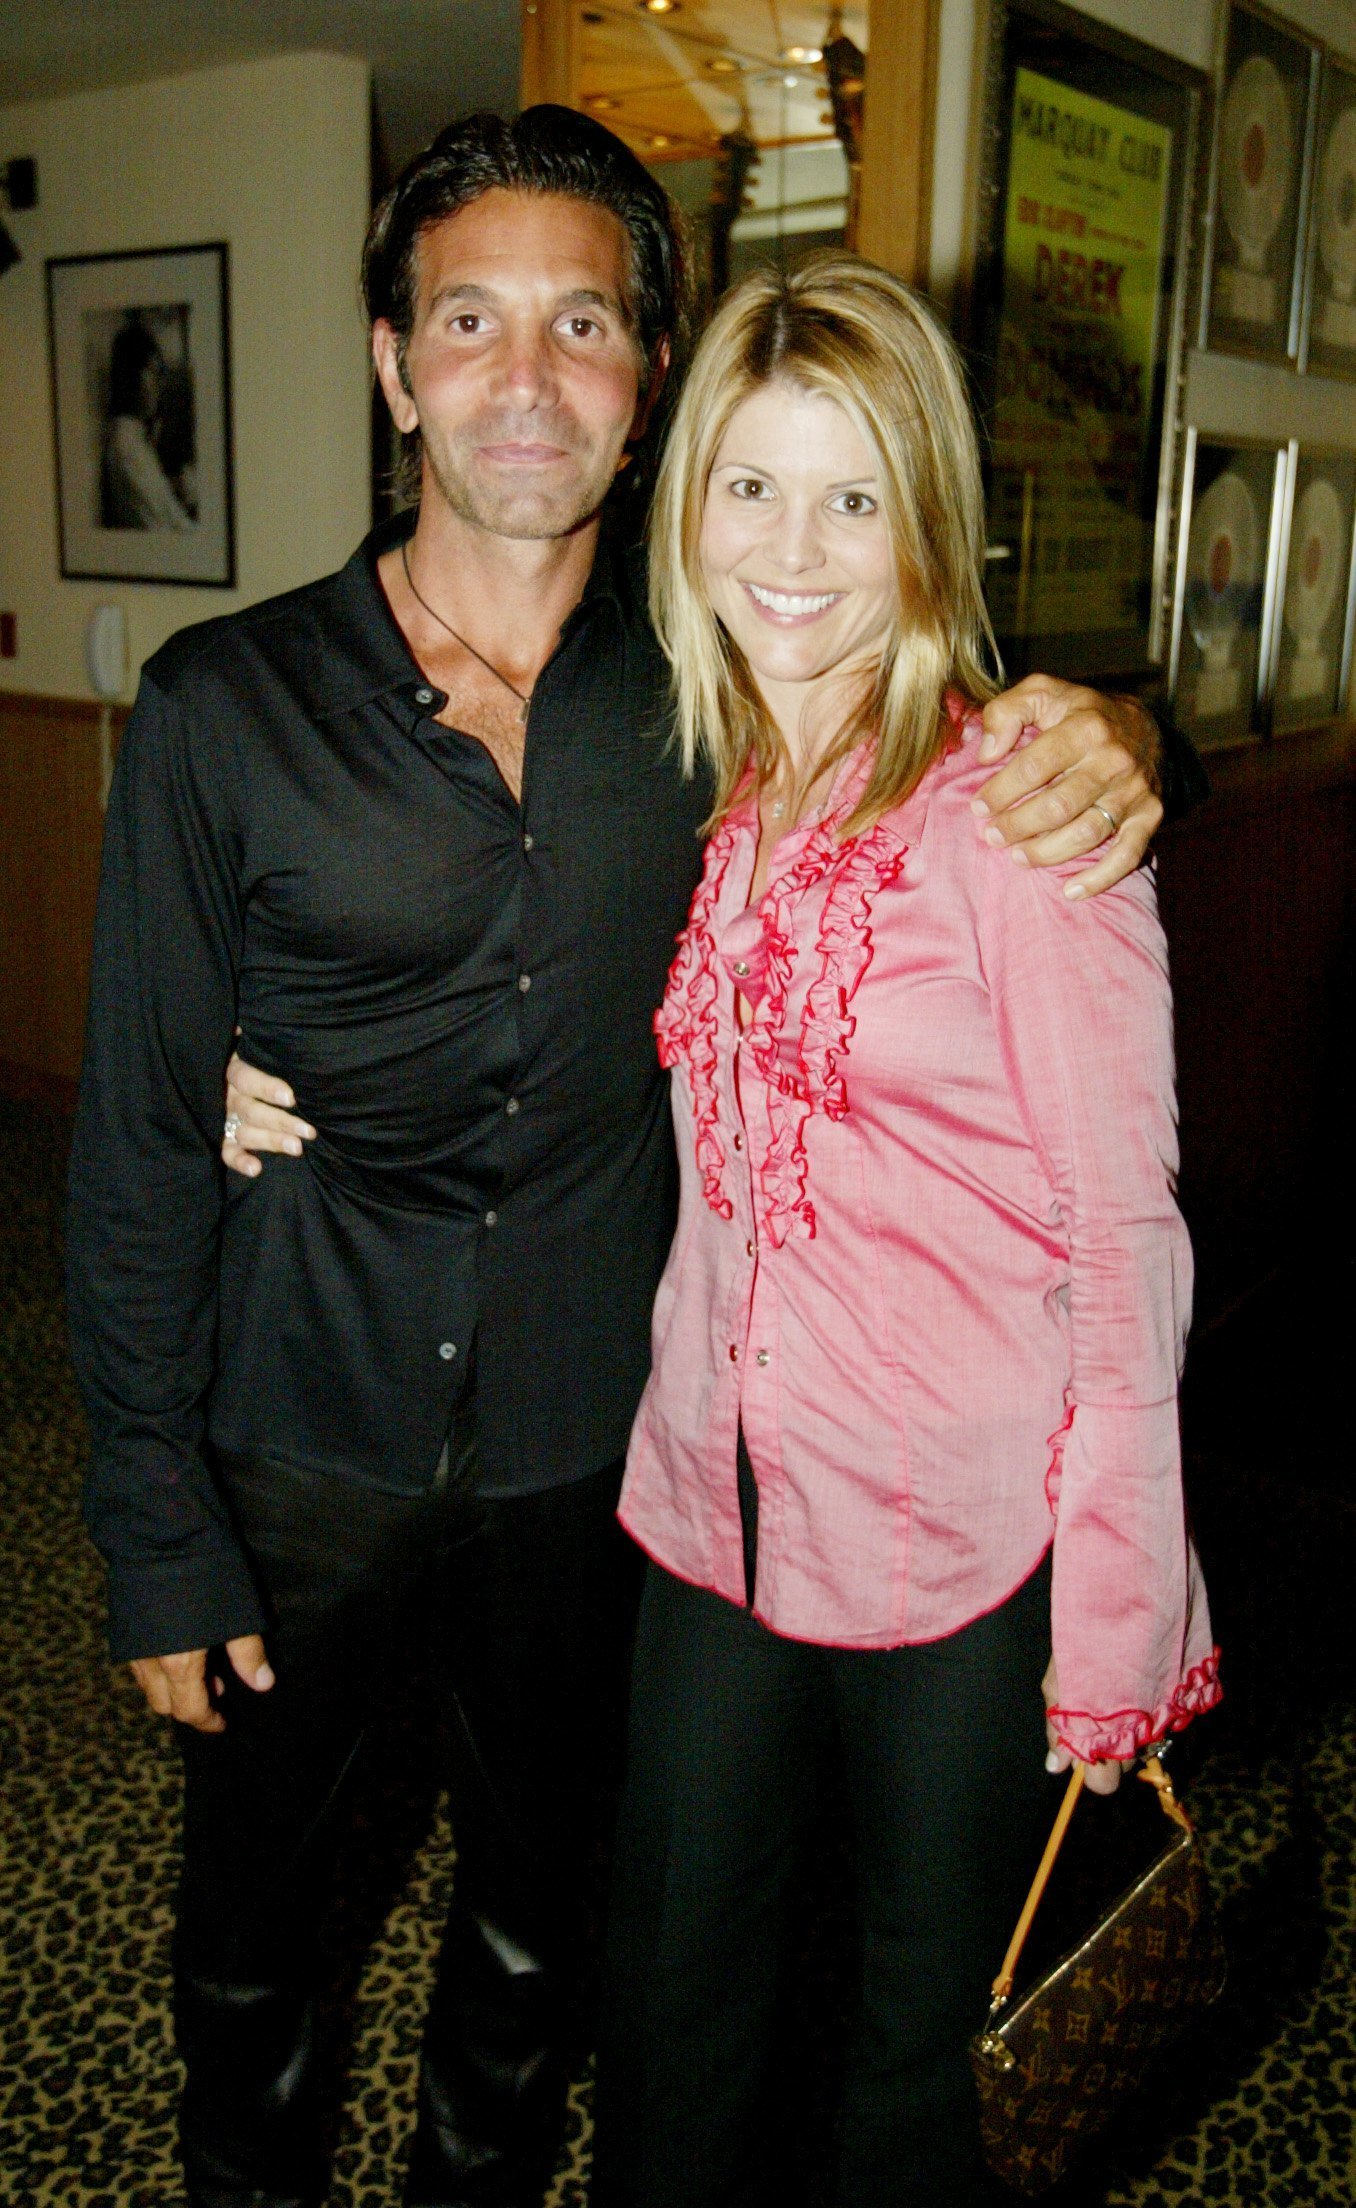 Mossimo Giannulli and Lori Loughlin | Photo: Getty Images